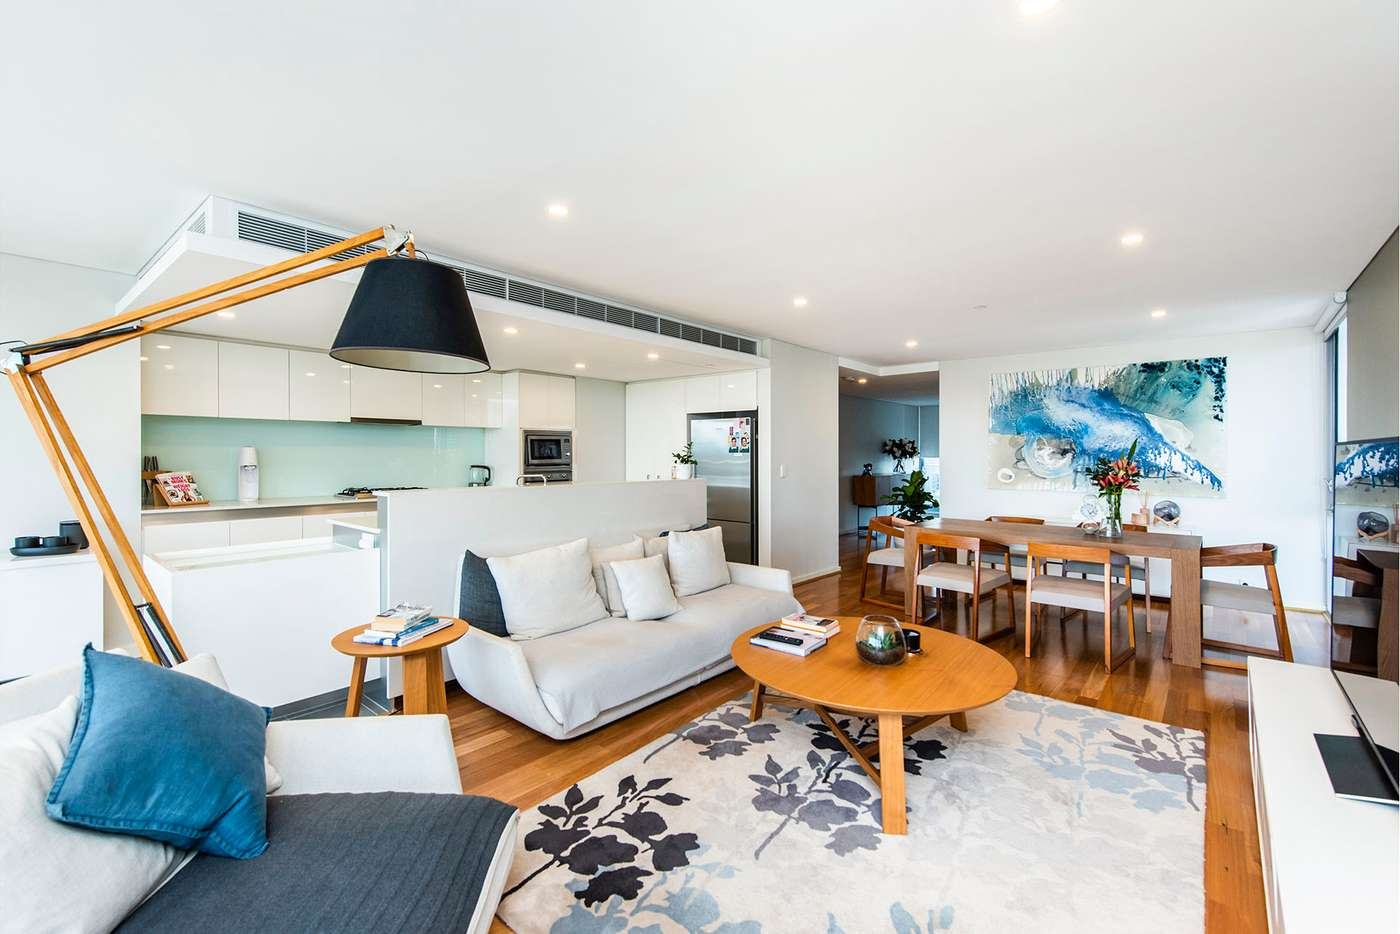 Main view of Homely apartment listing, 407/30 The Circus, Burswood WA 6100